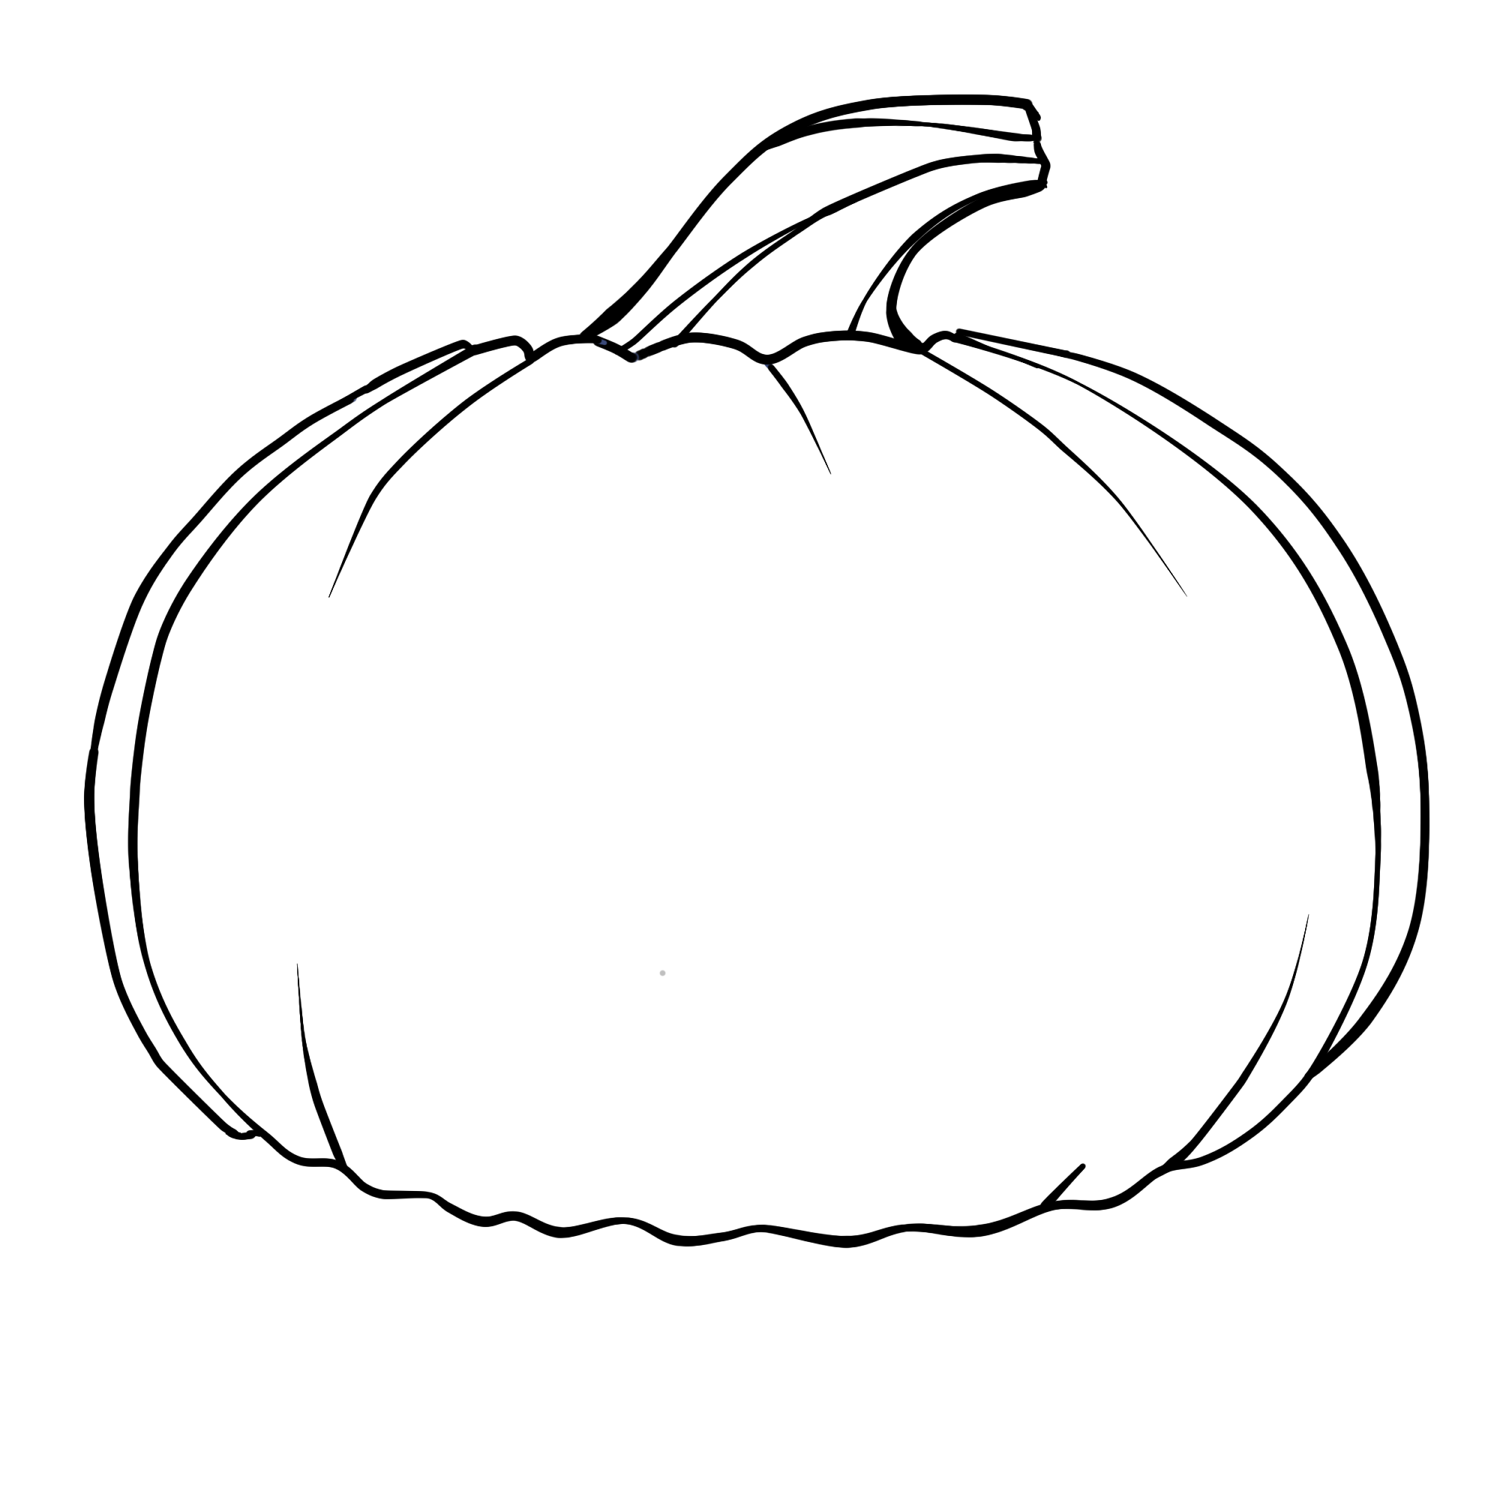 Free Printable Pumpkin Coloring Pages For Kids Preschool Pumpkin Coloring Pages